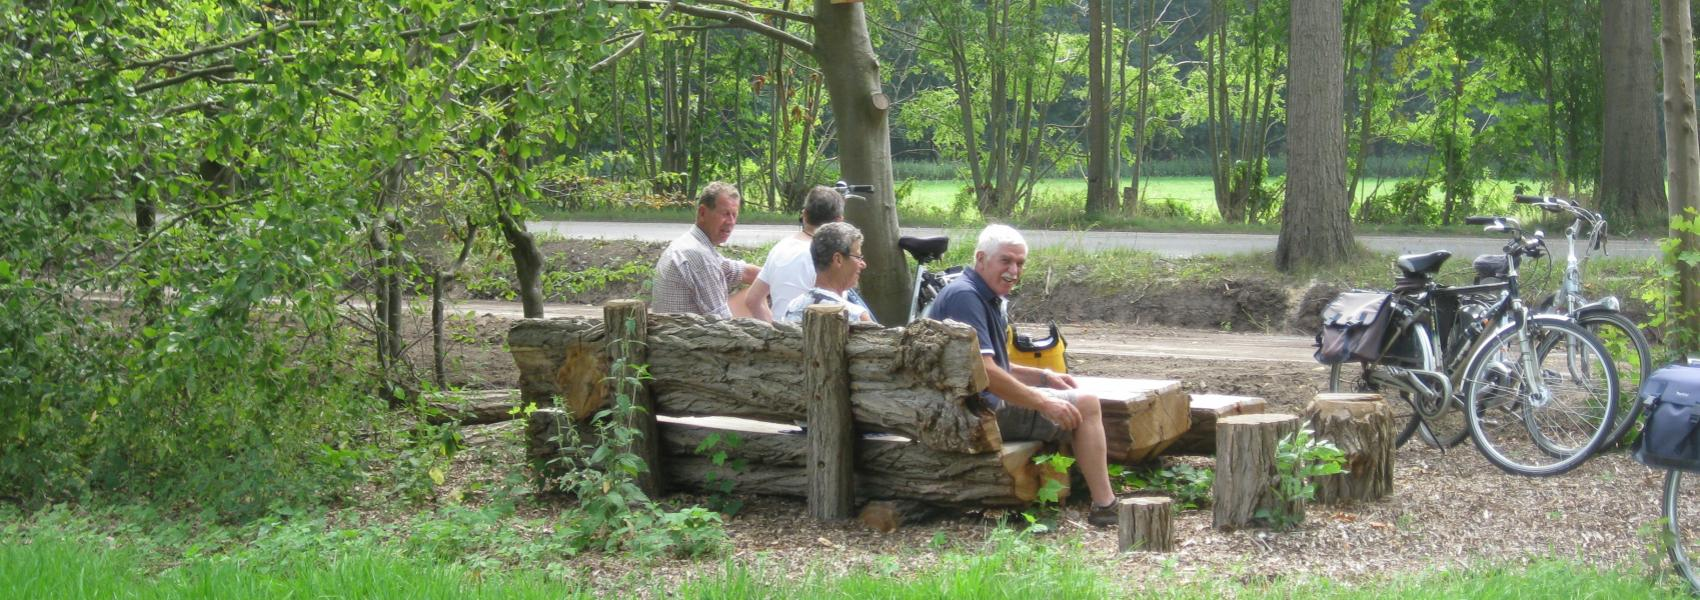 picknicken in Gewestbossen Ravels